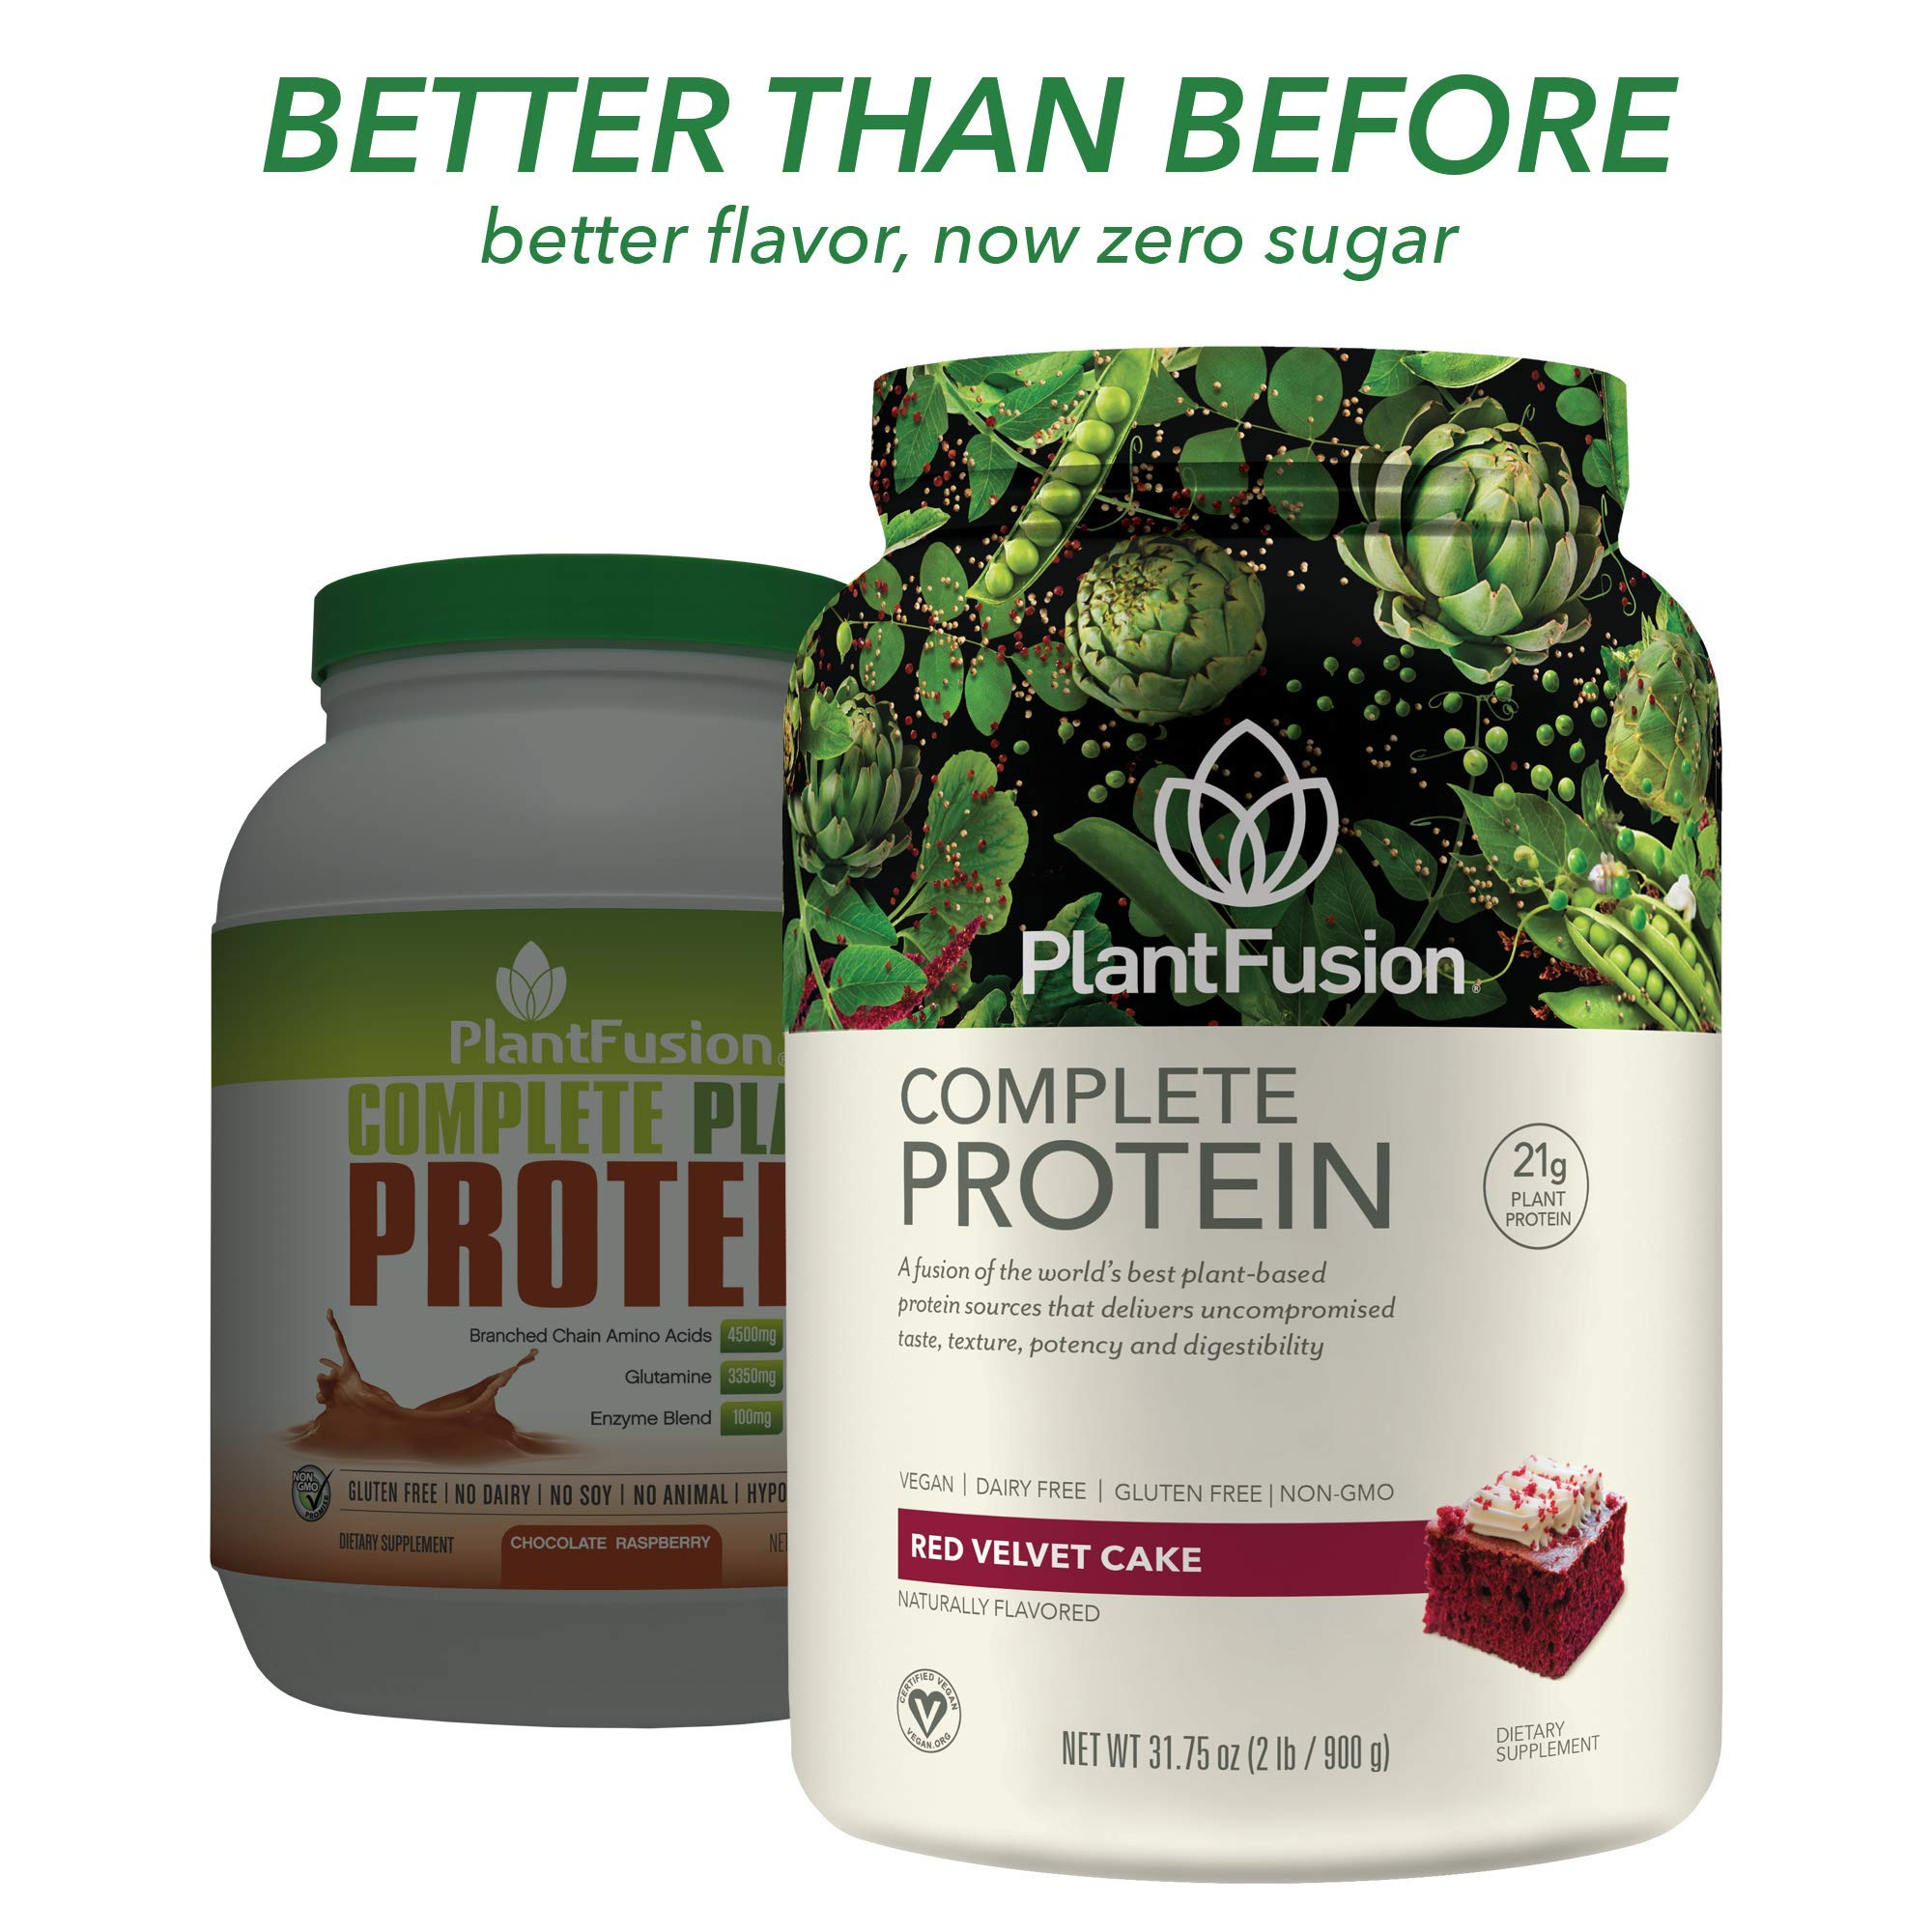 PlantFusion Complete Plant Based Protein Powder, Chocolate Raspberry, 2 Lb Tub, 30 Servings, 1 Count, Gluten Free, Vegan, Non-GMO